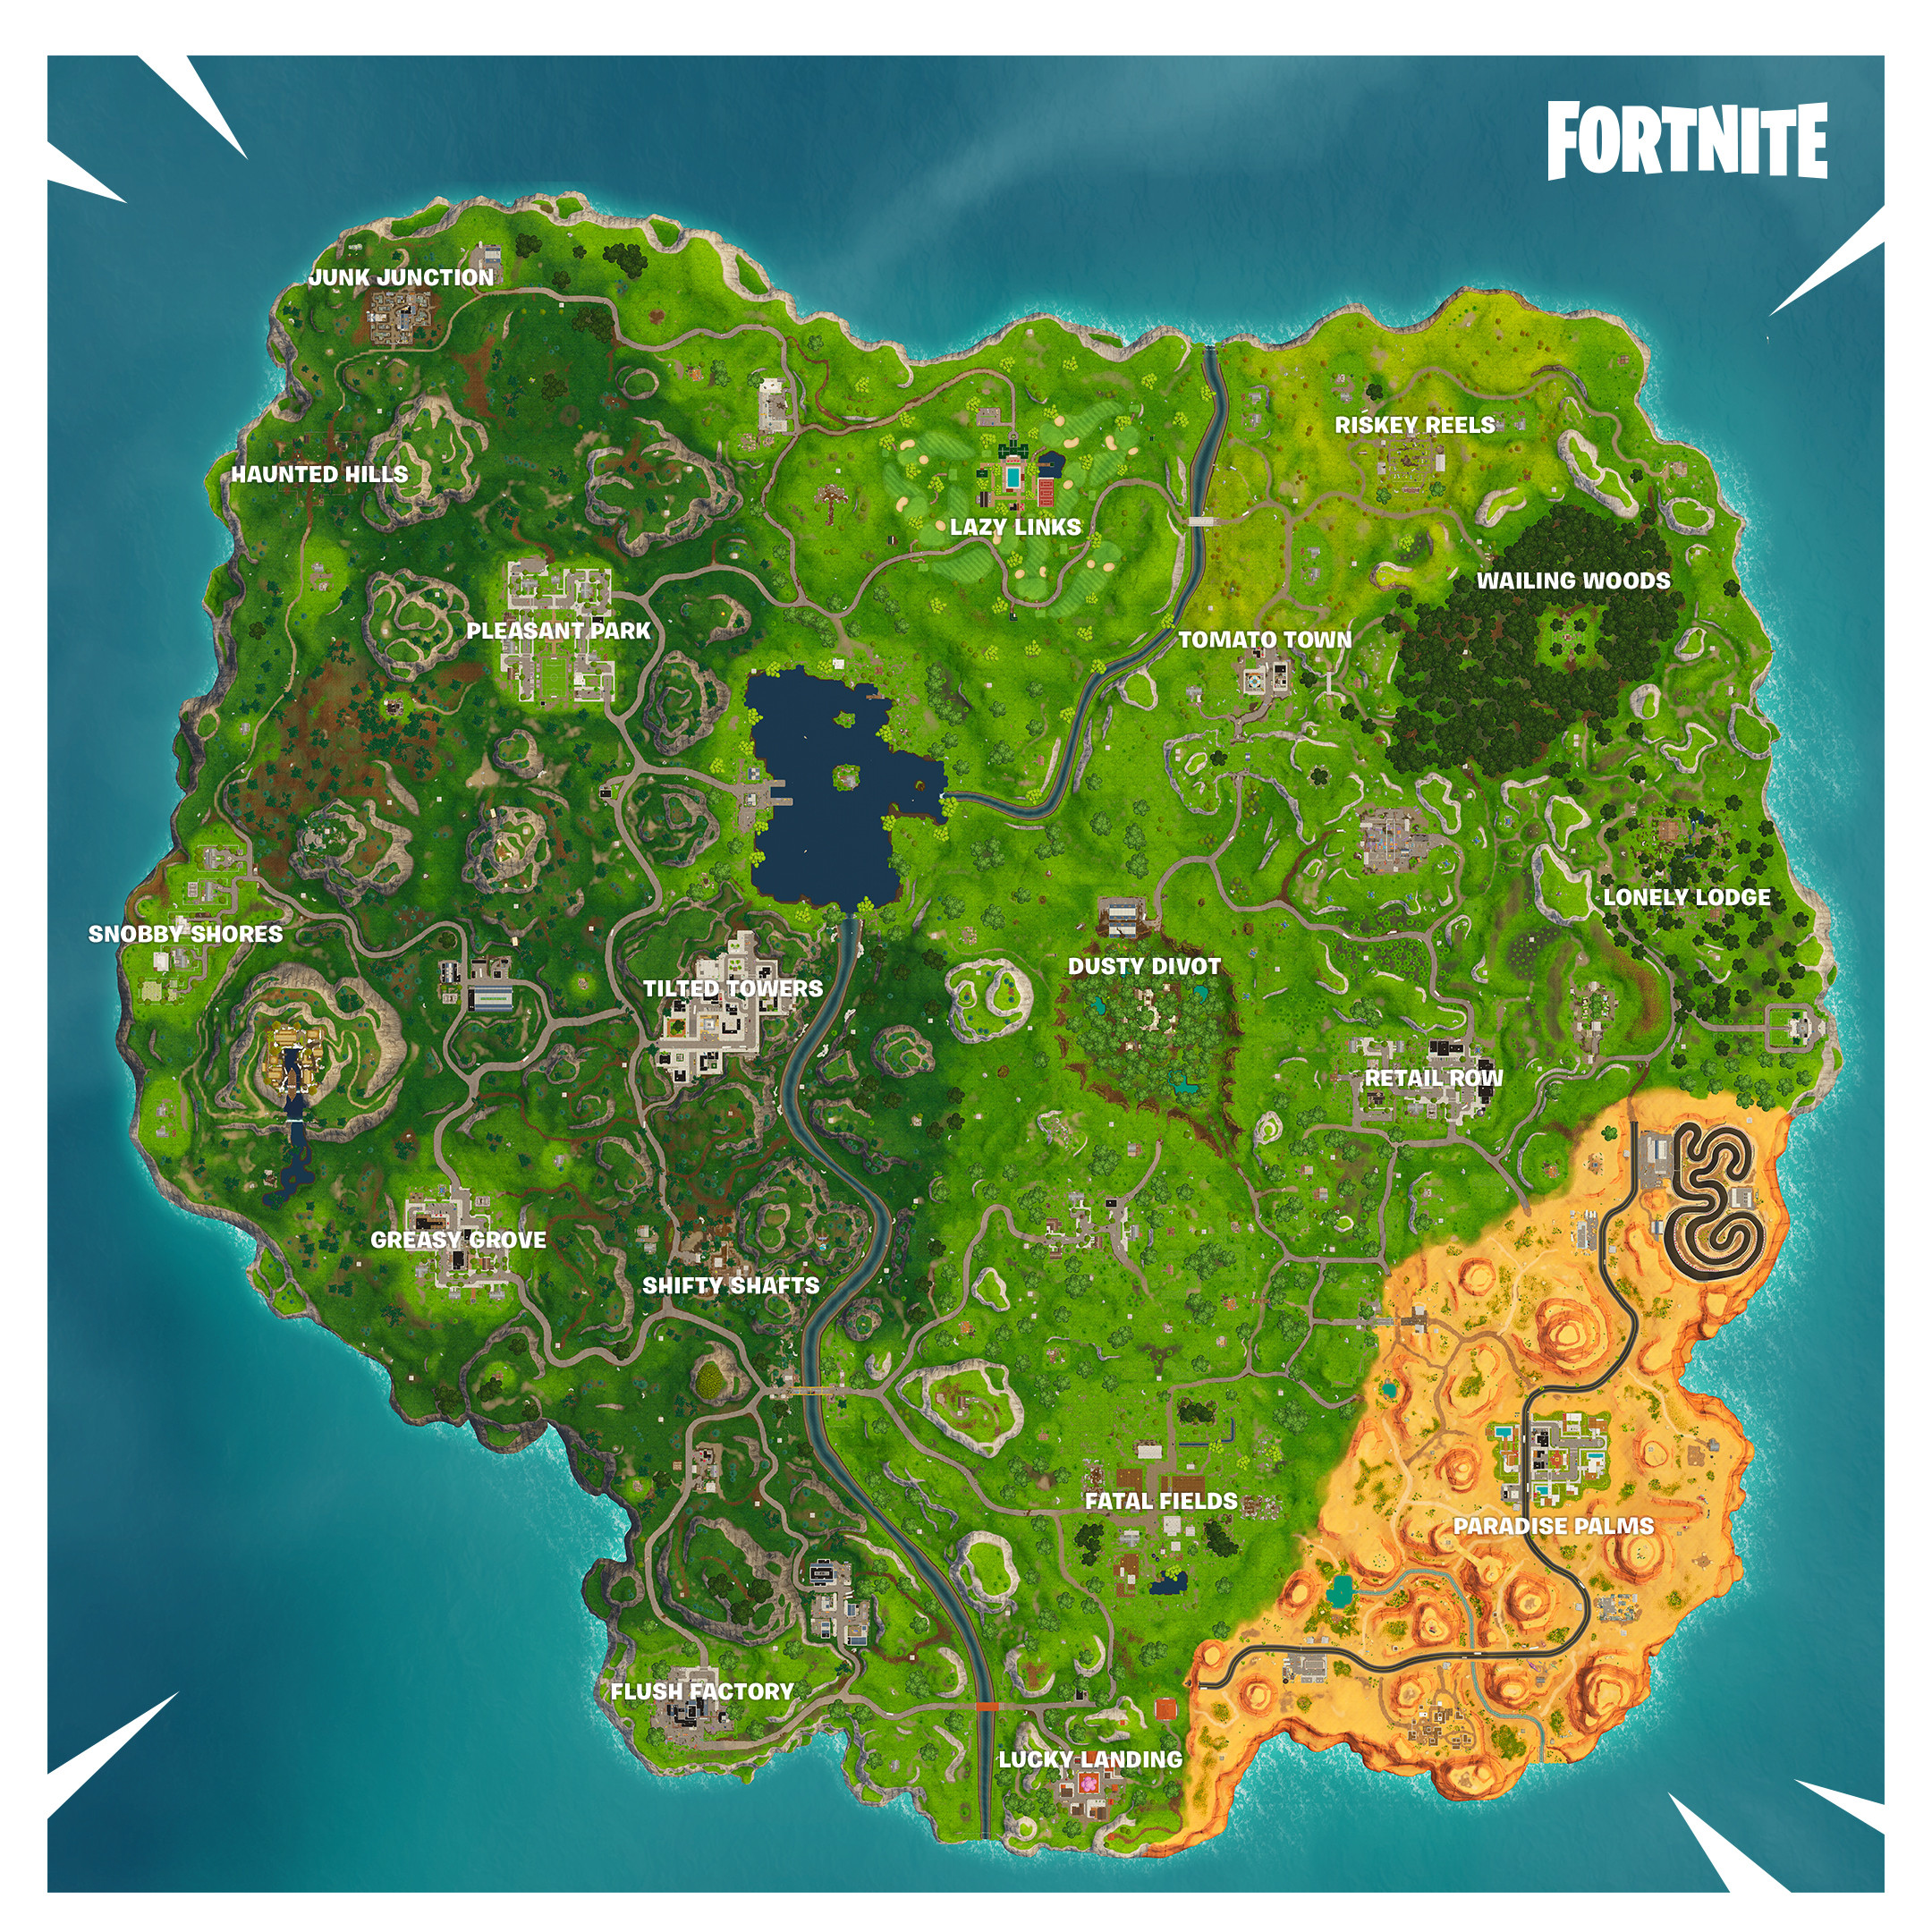 Fortnite Season 5 Map Printable Elegant Fortnite Sezona 5 Season 5 V5 0 Gaming